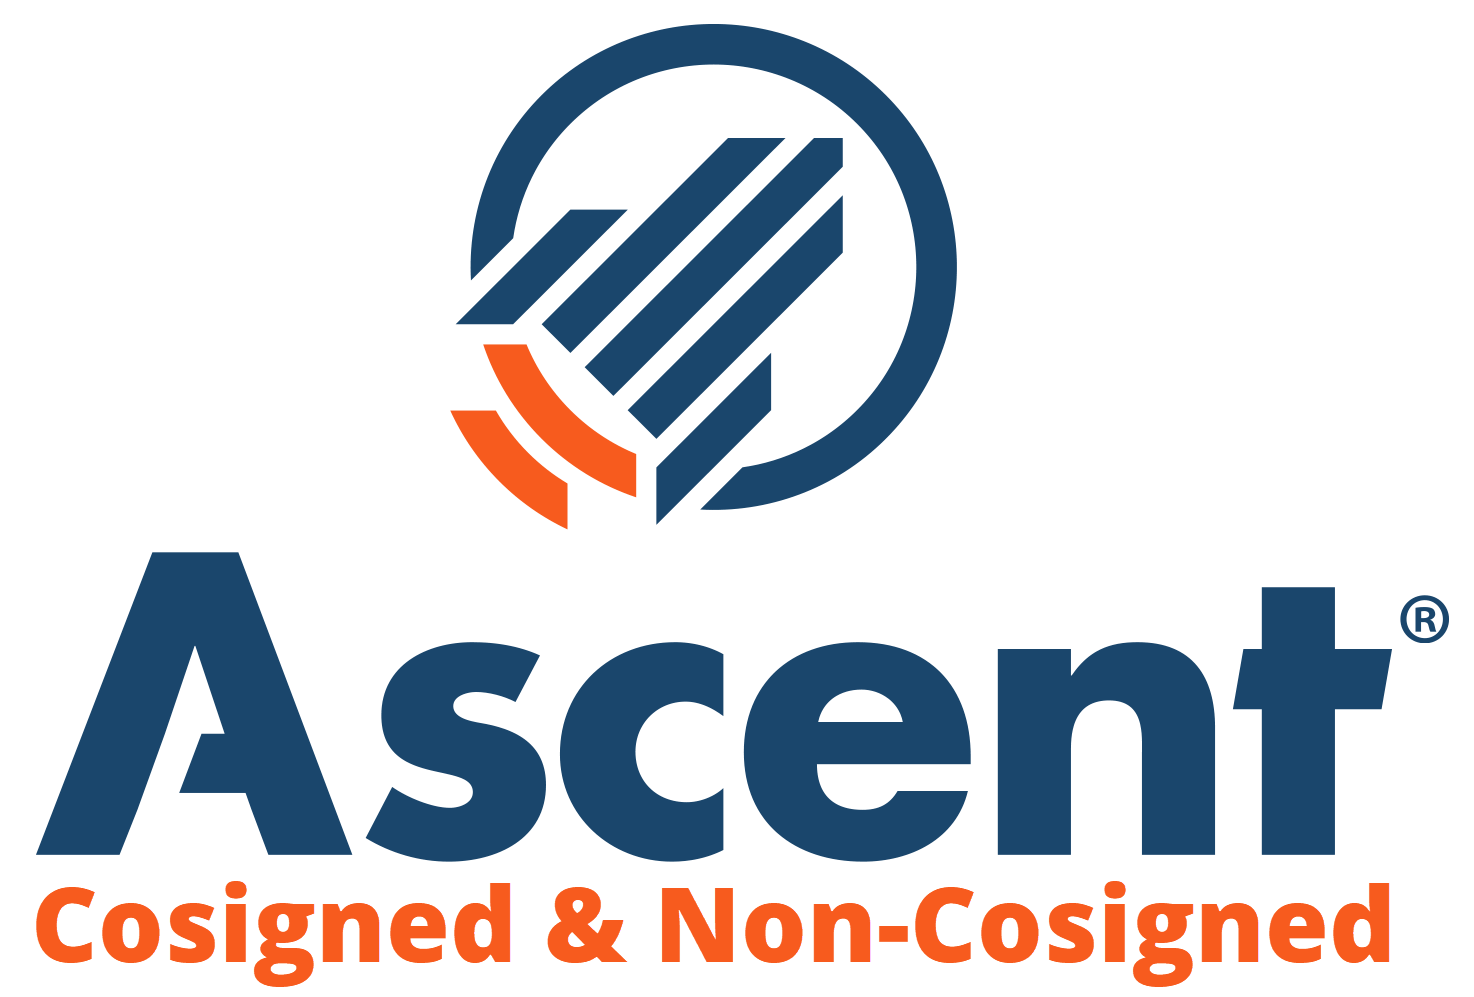 ascent-logo